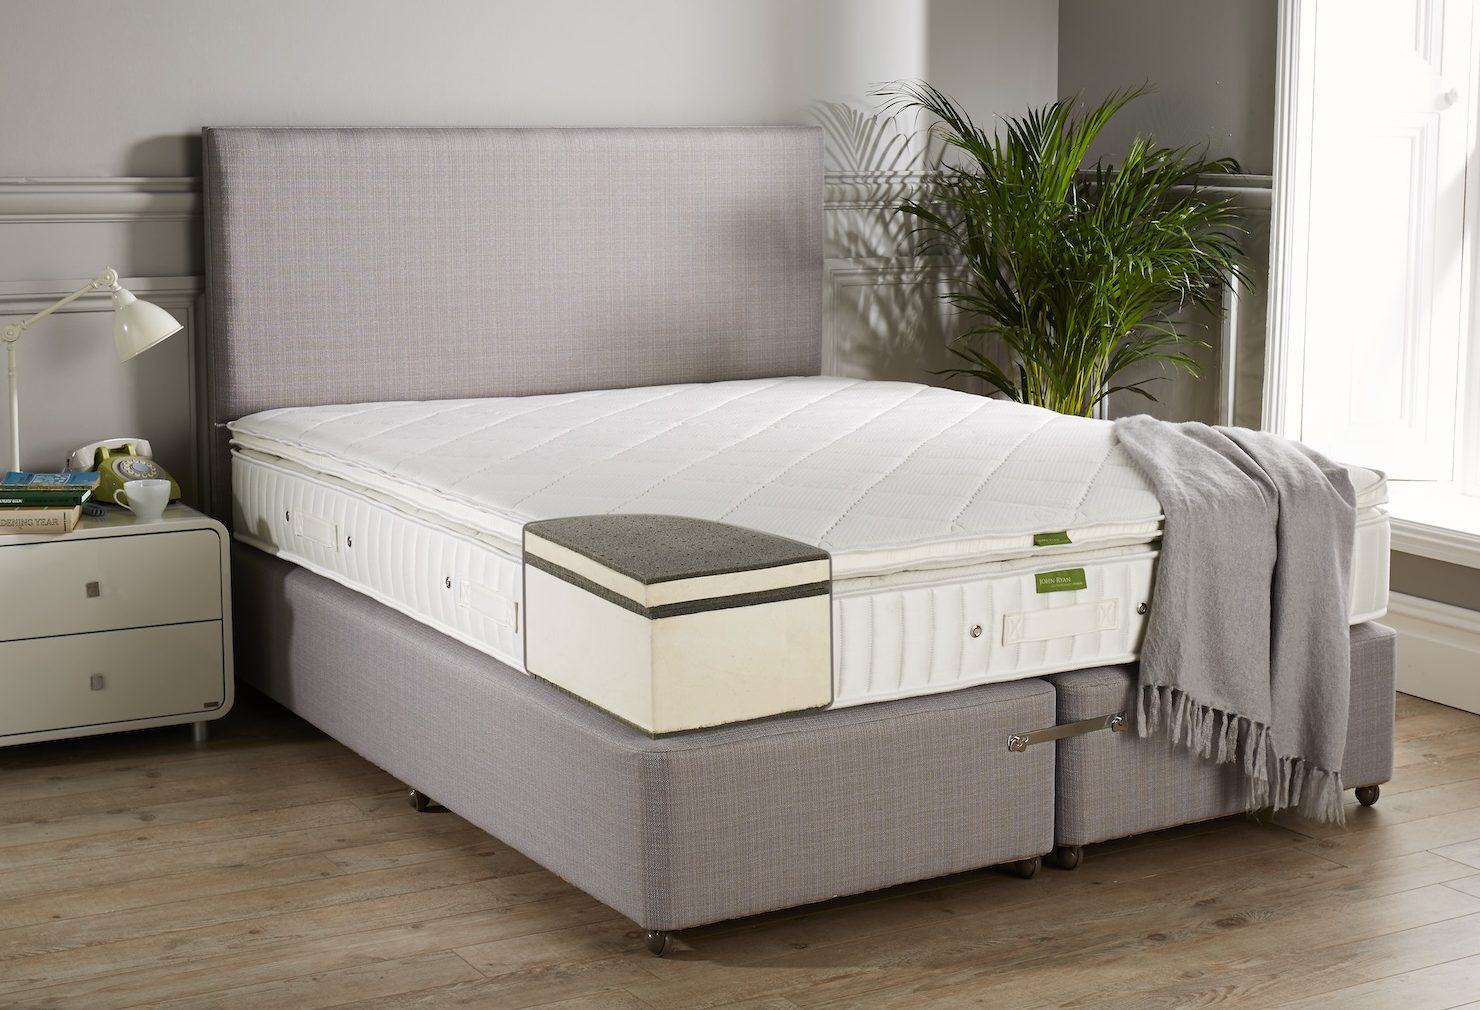 Fusion 3 mattress with Grey throw